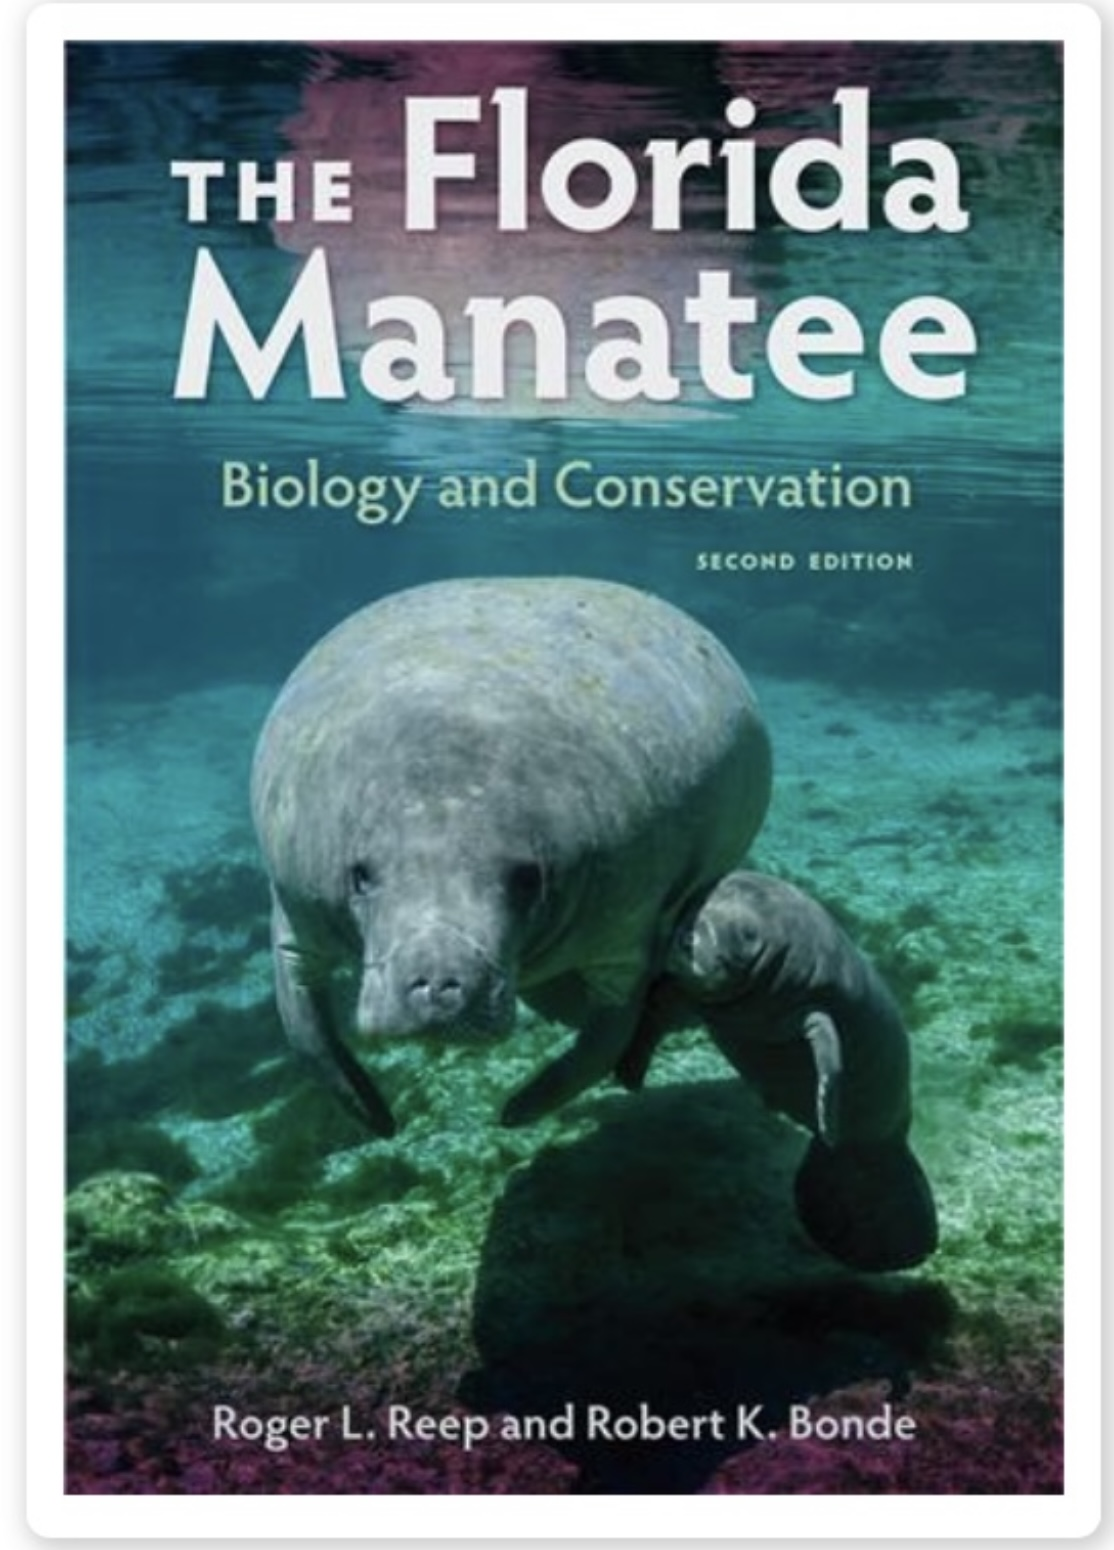 Book,2nd edition,The Florida Manatee,